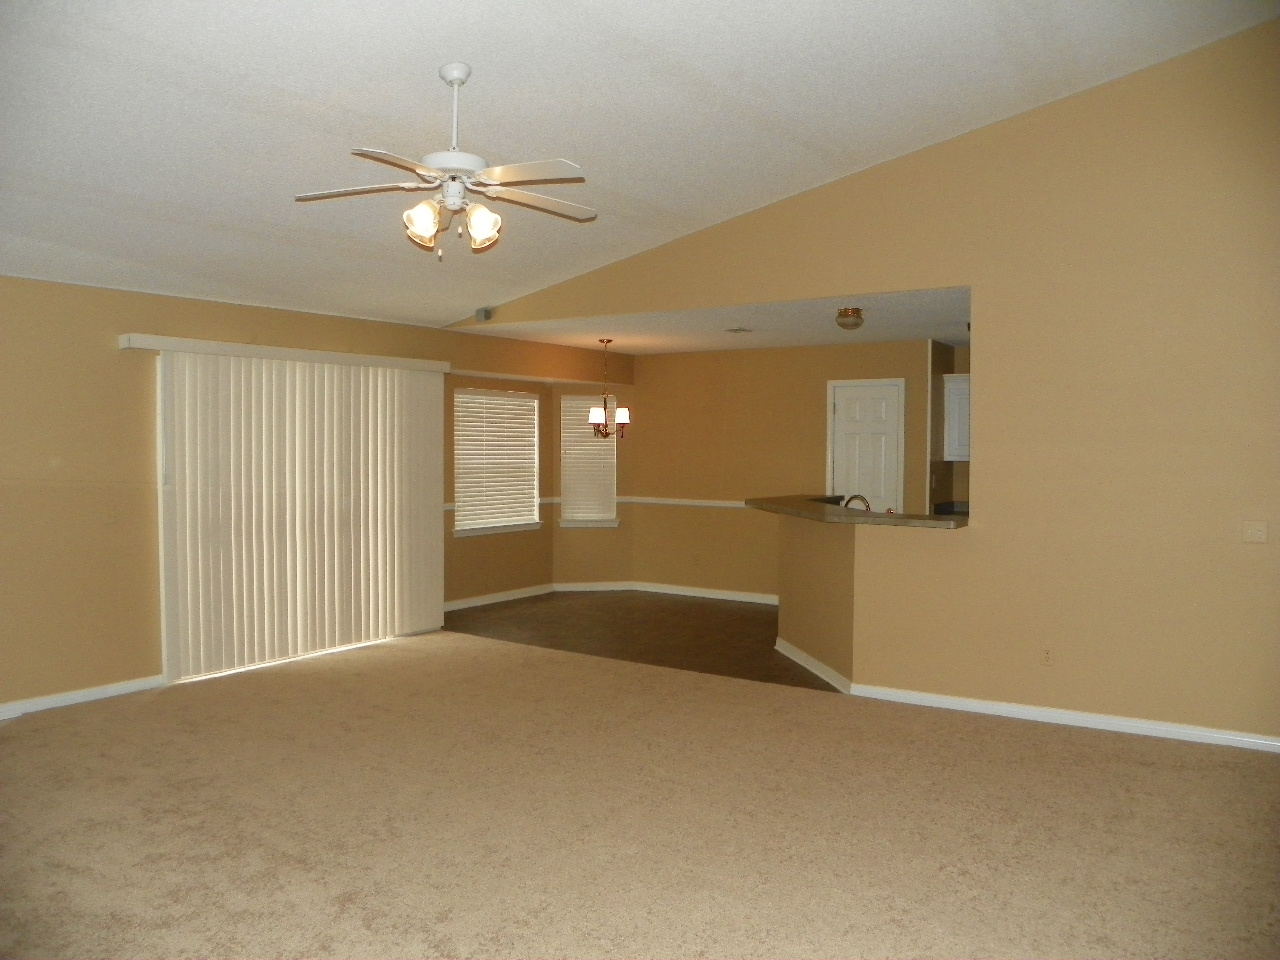 paint colors living room brown in pensacola florida are your colorful costing you money